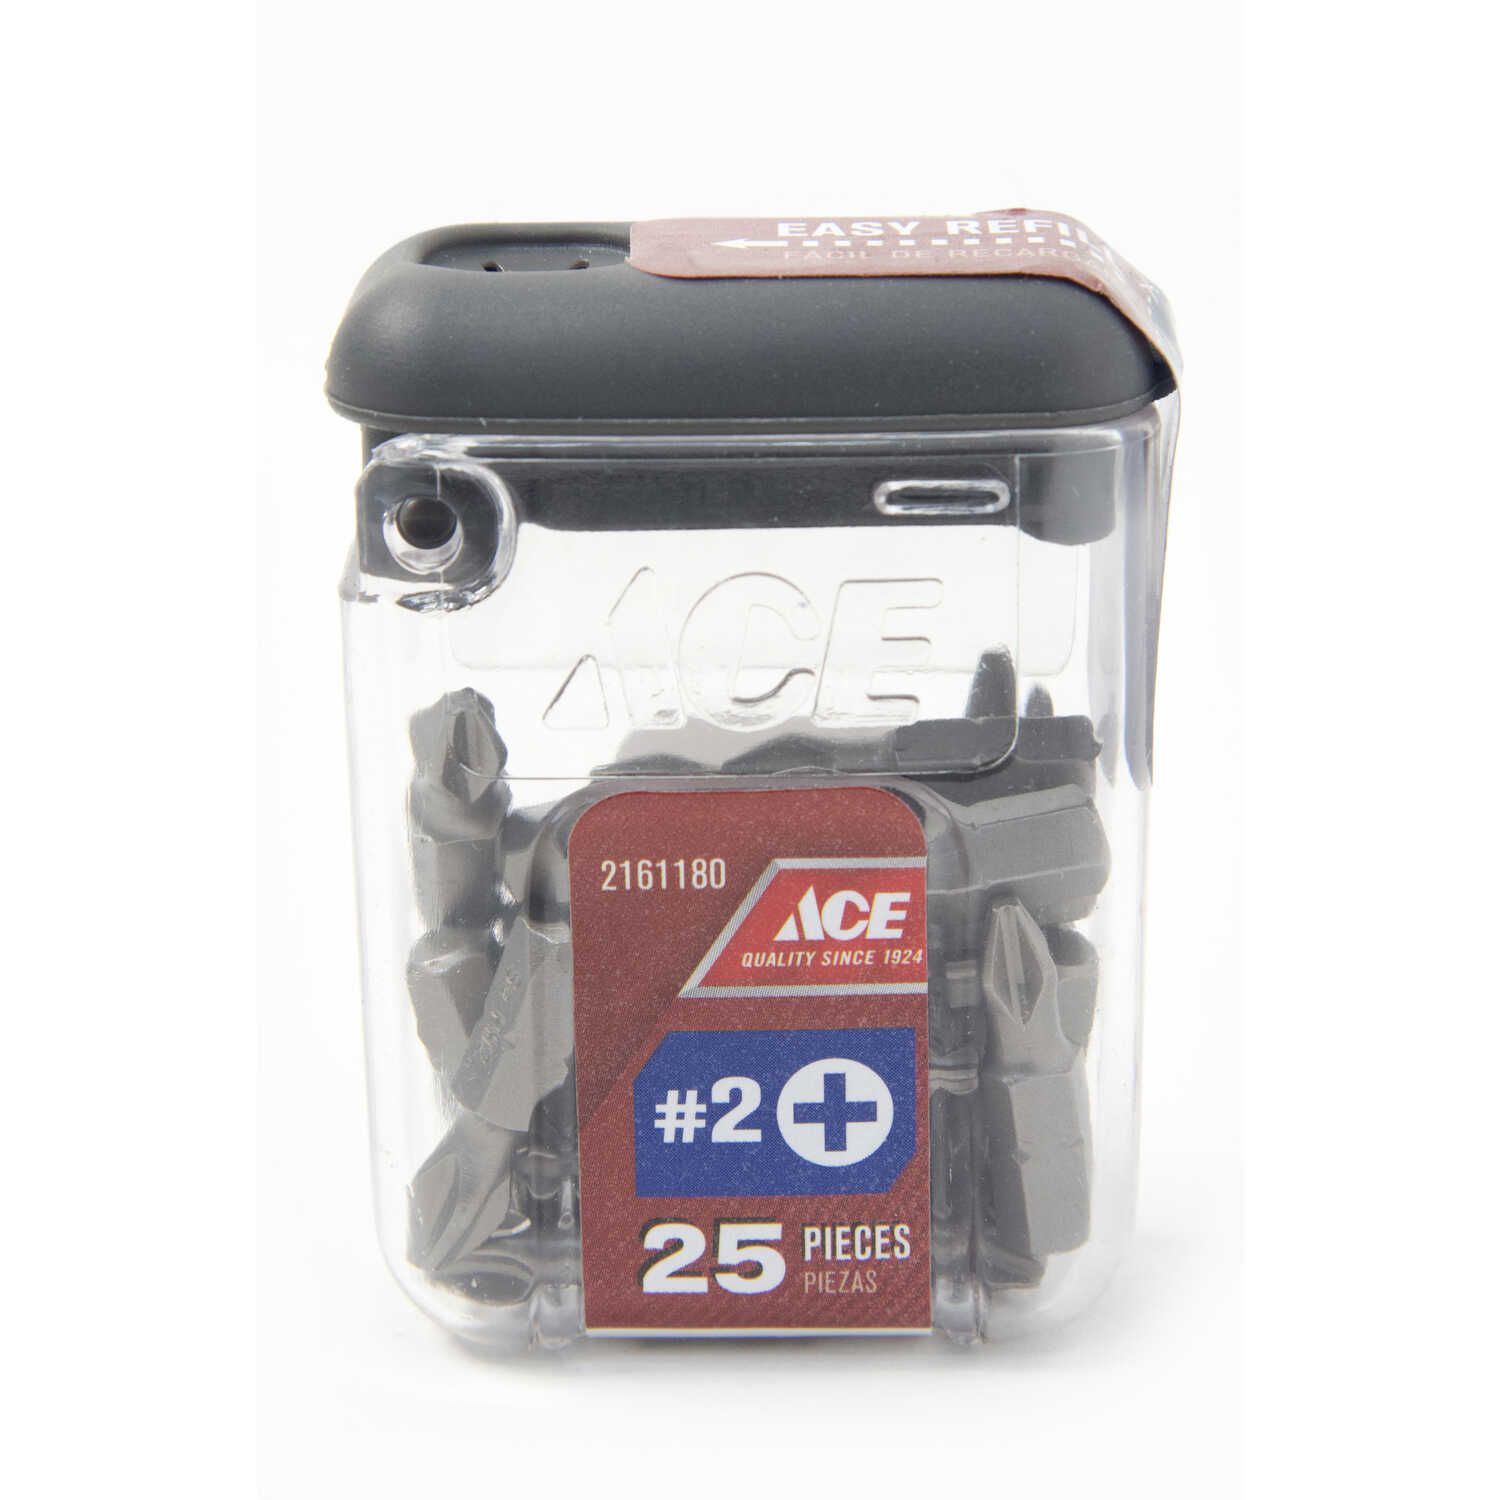 Ace  2   x 1 in. L Phillips  Insert Bit  S2 Tool Steel  Hex Shank  25 pc. 1/4 in.